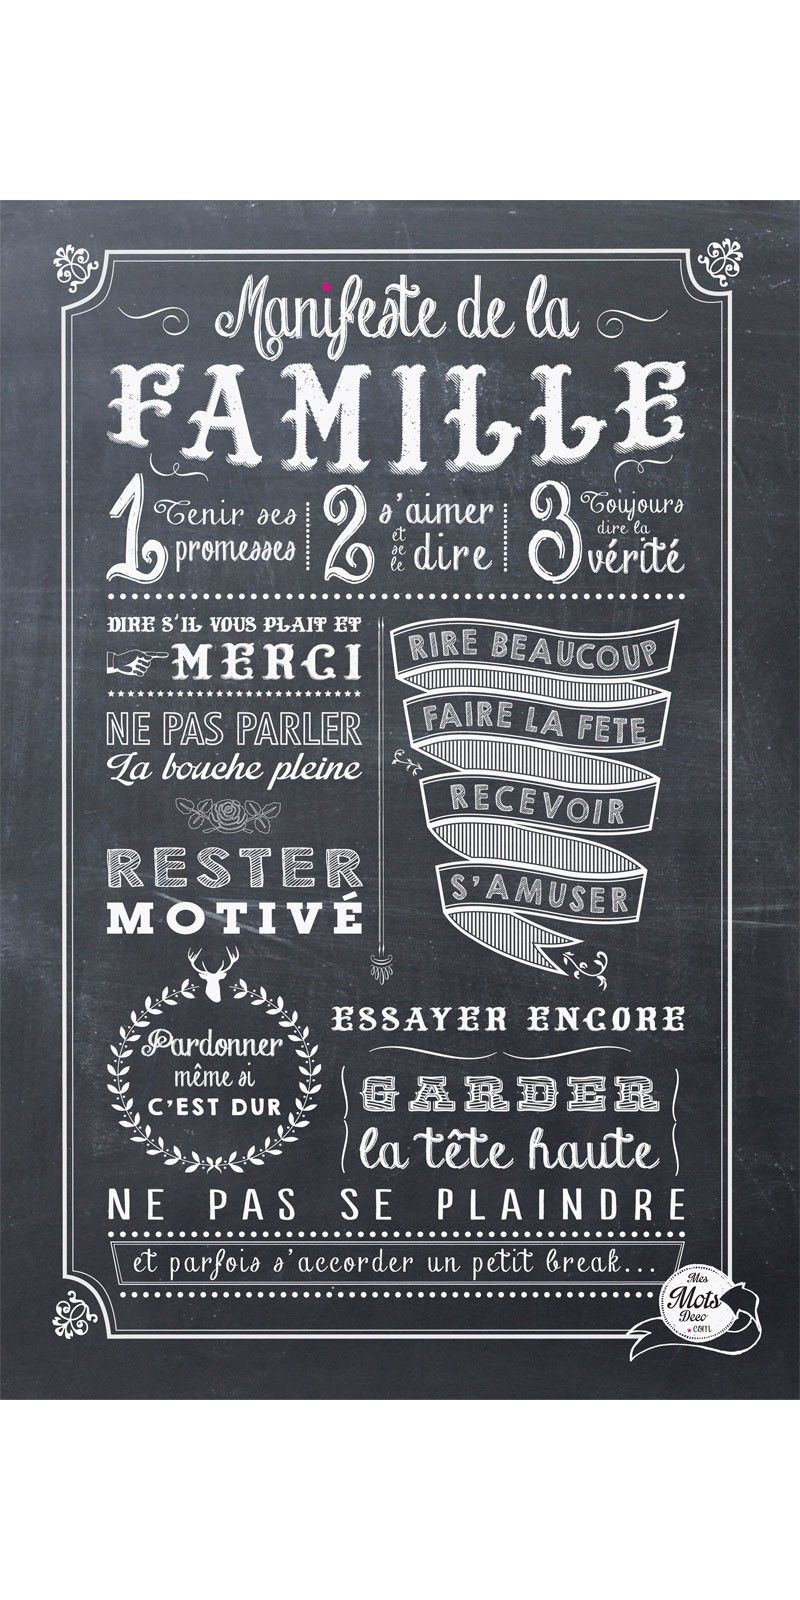 le manifeste de la famille affiche encadrer kids family pinterest messages. Black Bedroom Furniture Sets. Home Design Ideas